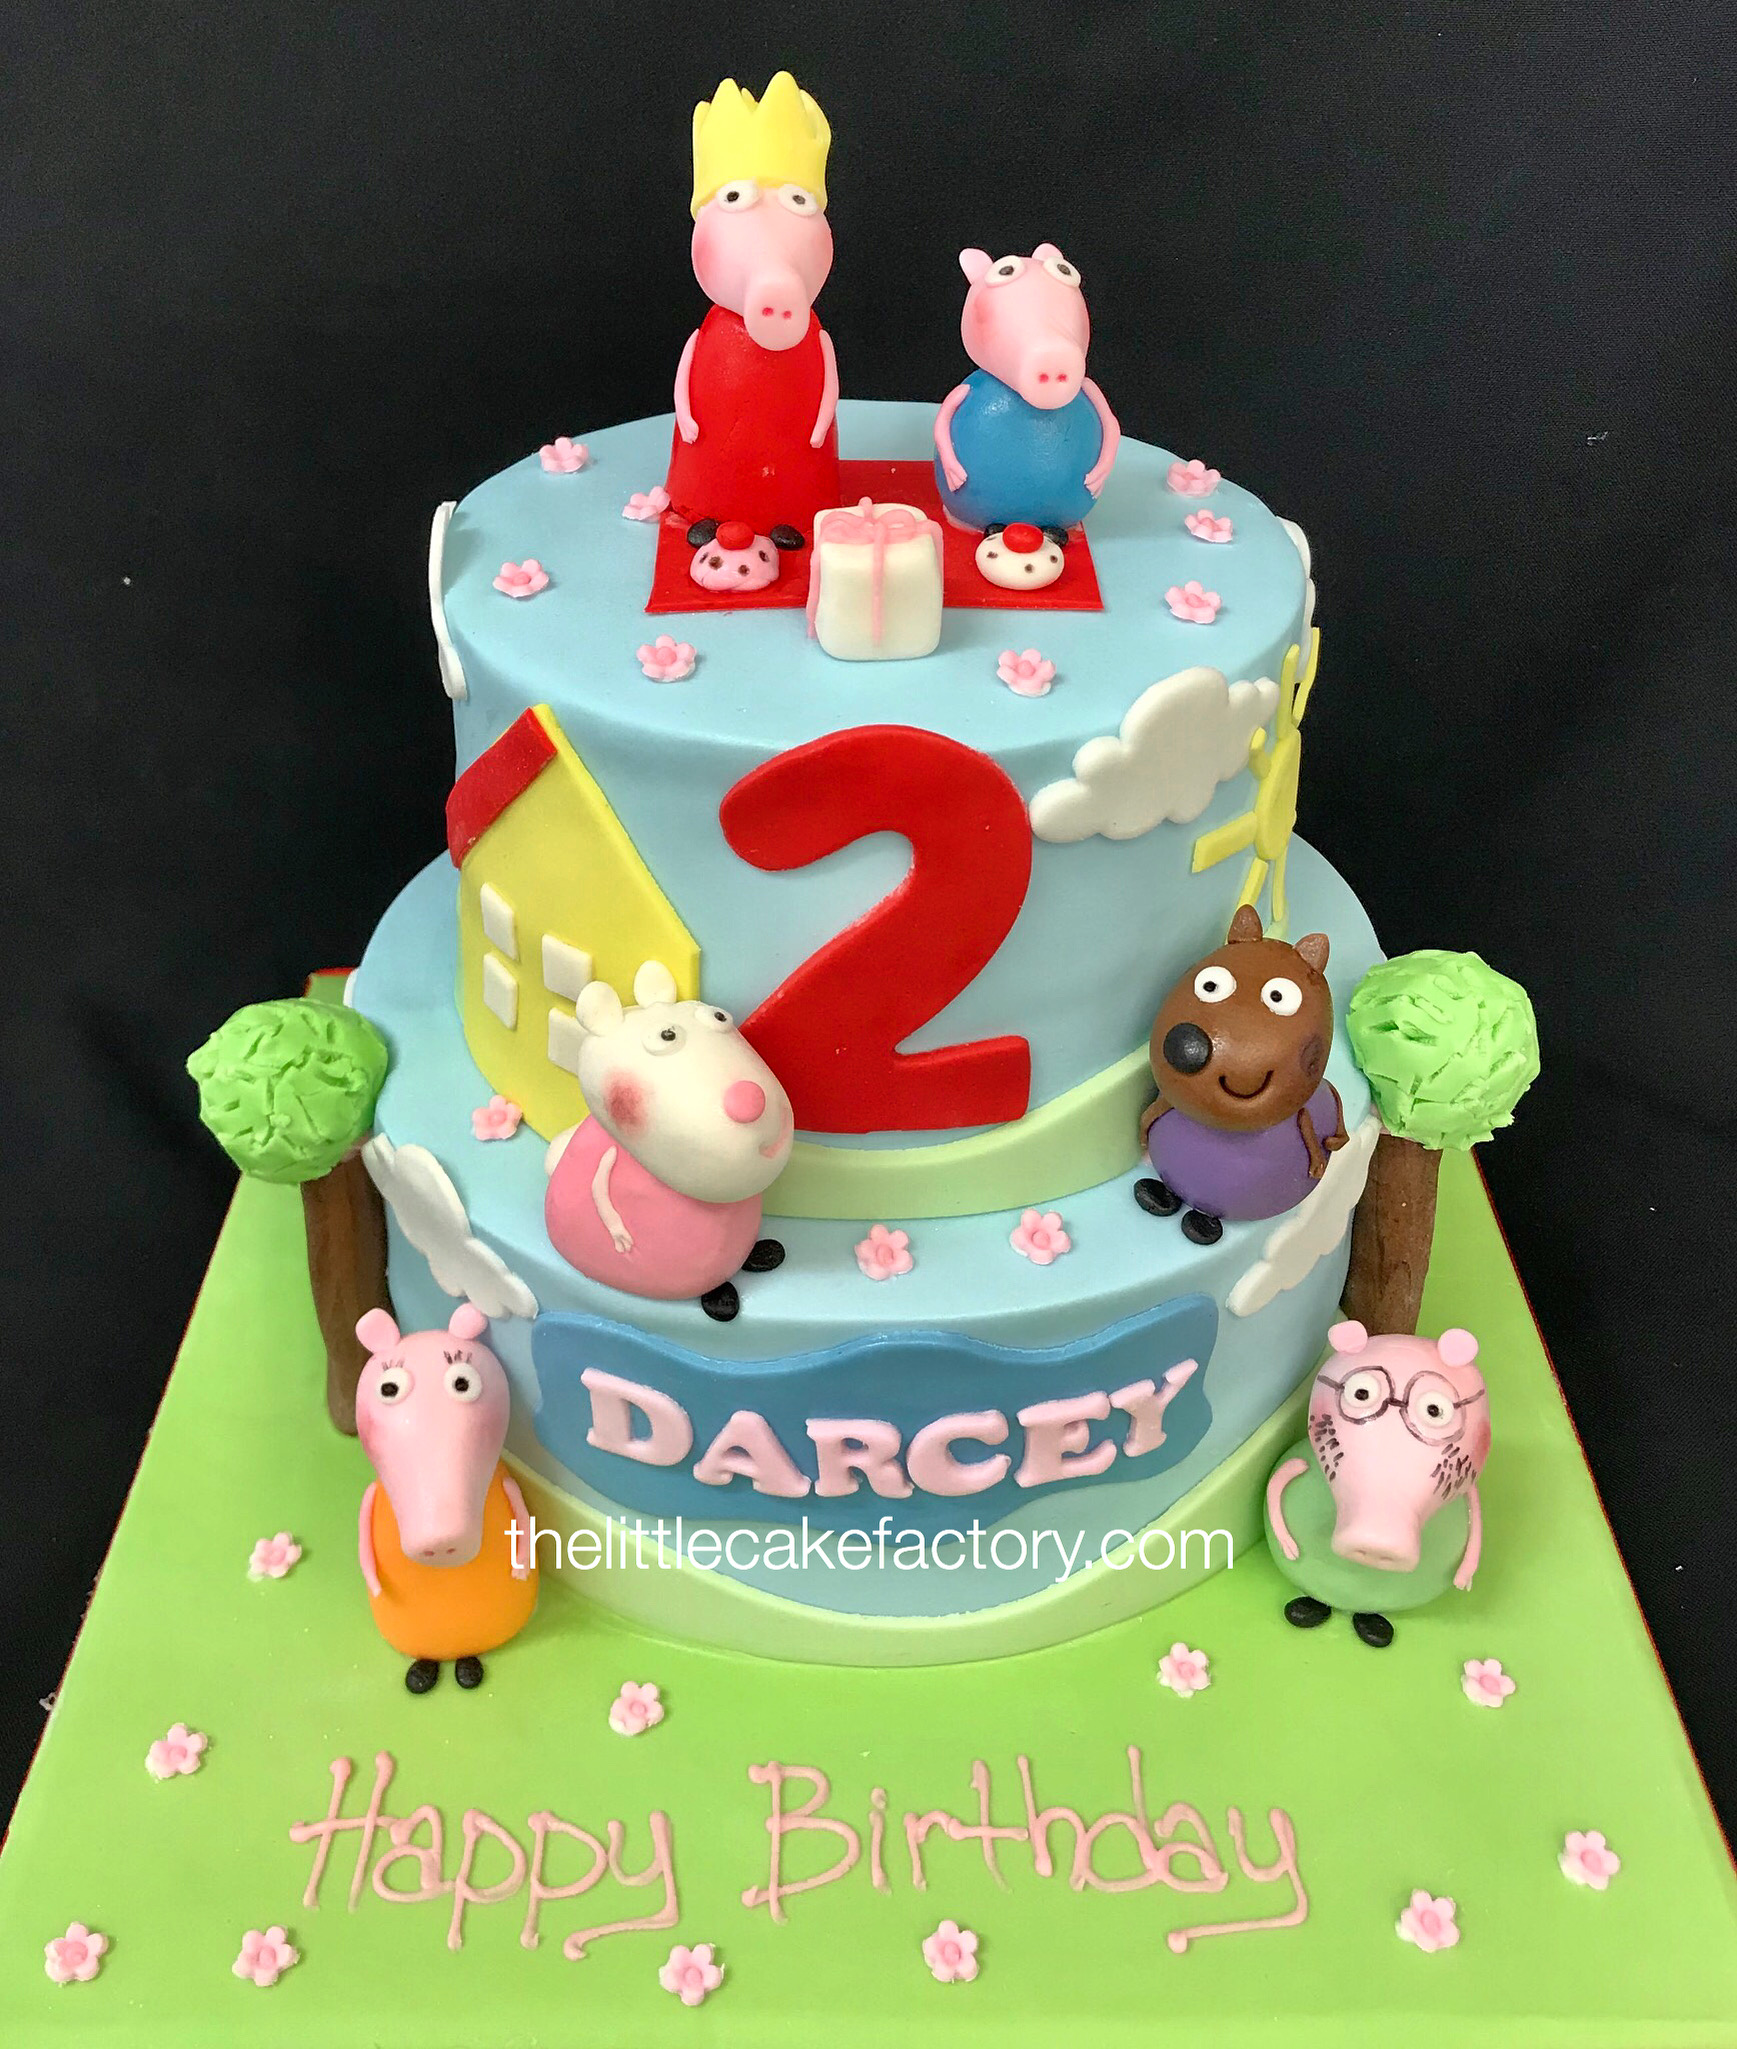 peppa pig friends From £250 Cake | Children Cakes